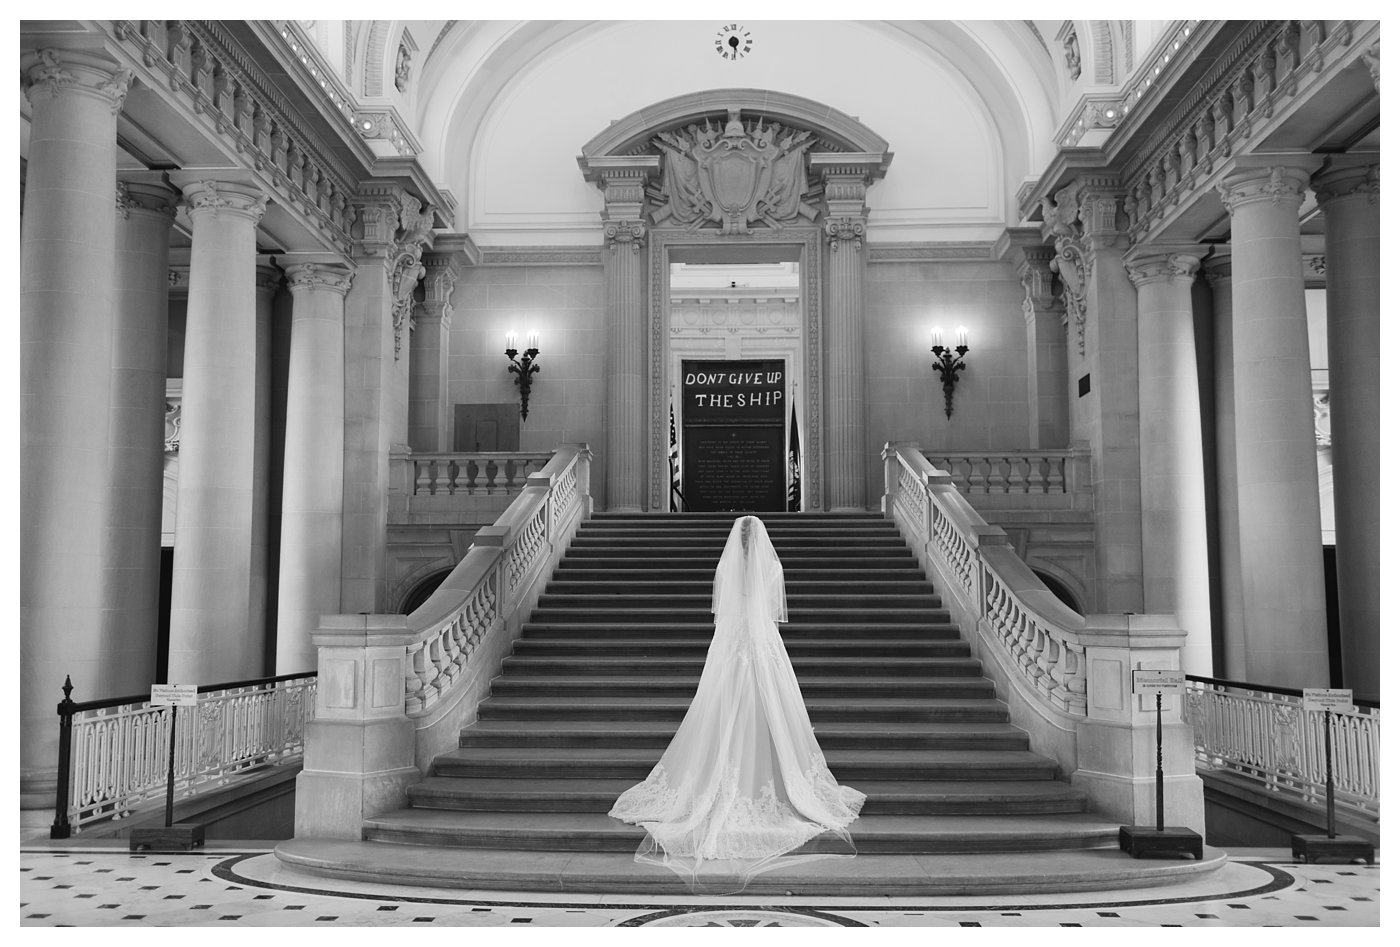 Bridal Portraits in Bancroft Hall at the United States Naval Academy by Amanda and Grady Photography